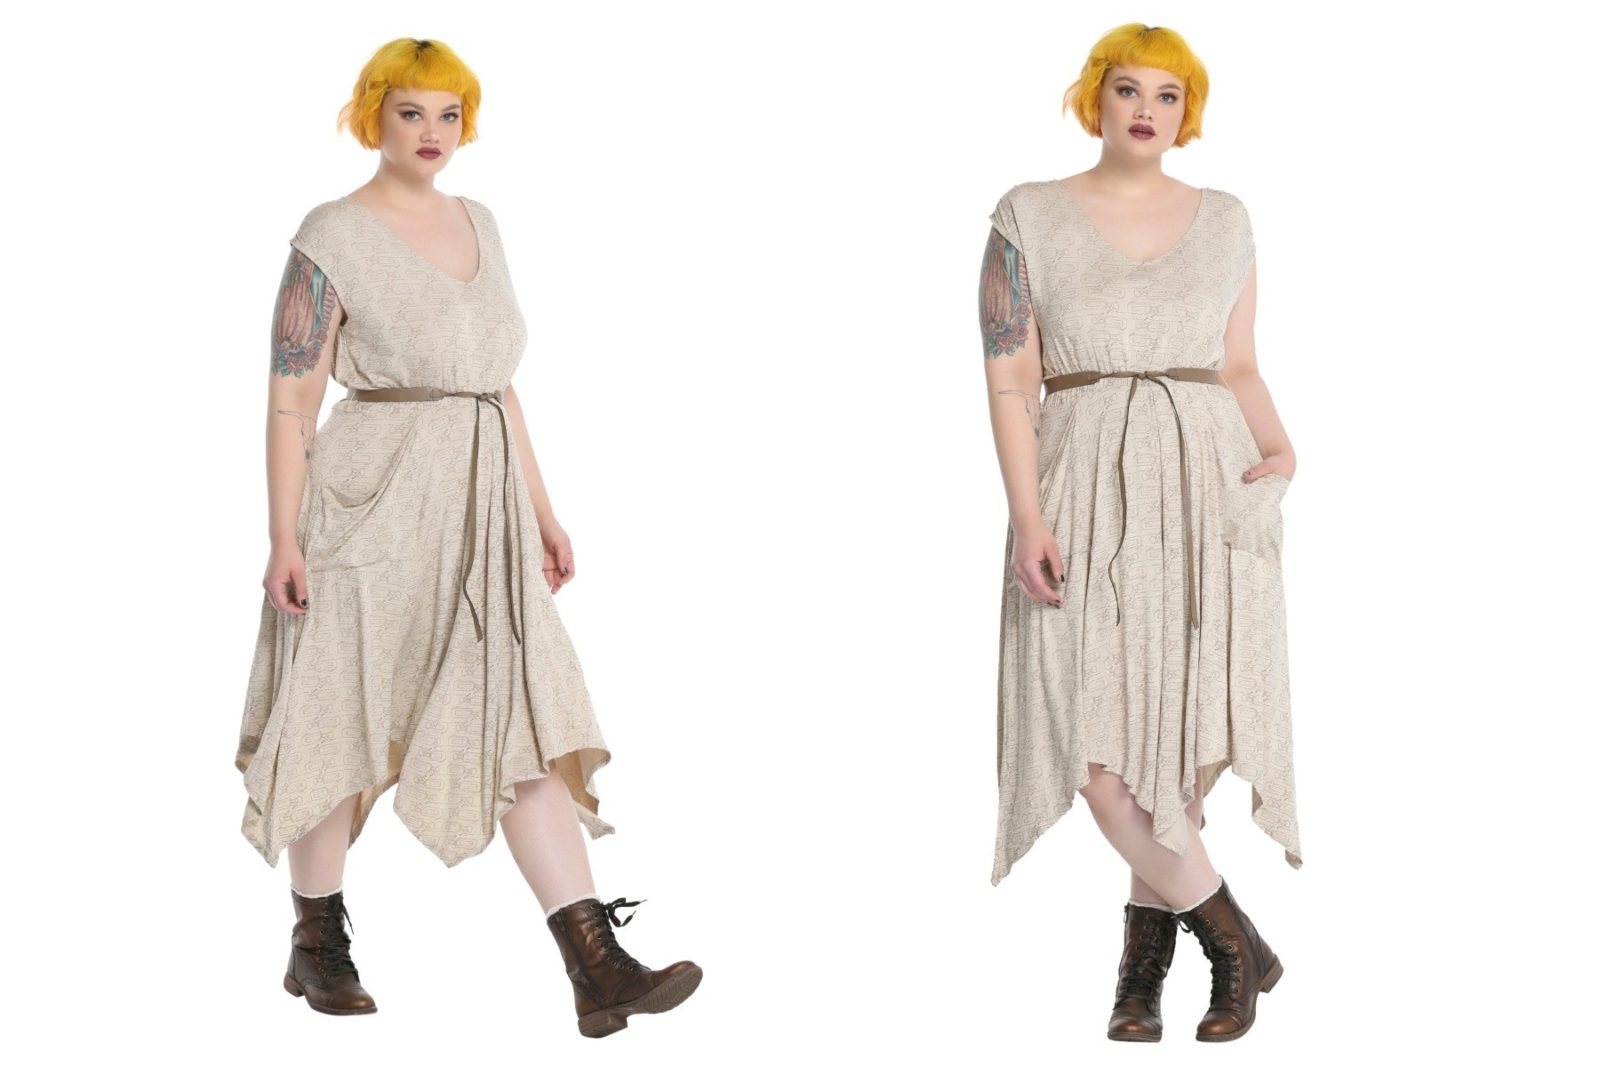 Women's plus size Rey dress at Hot Topic